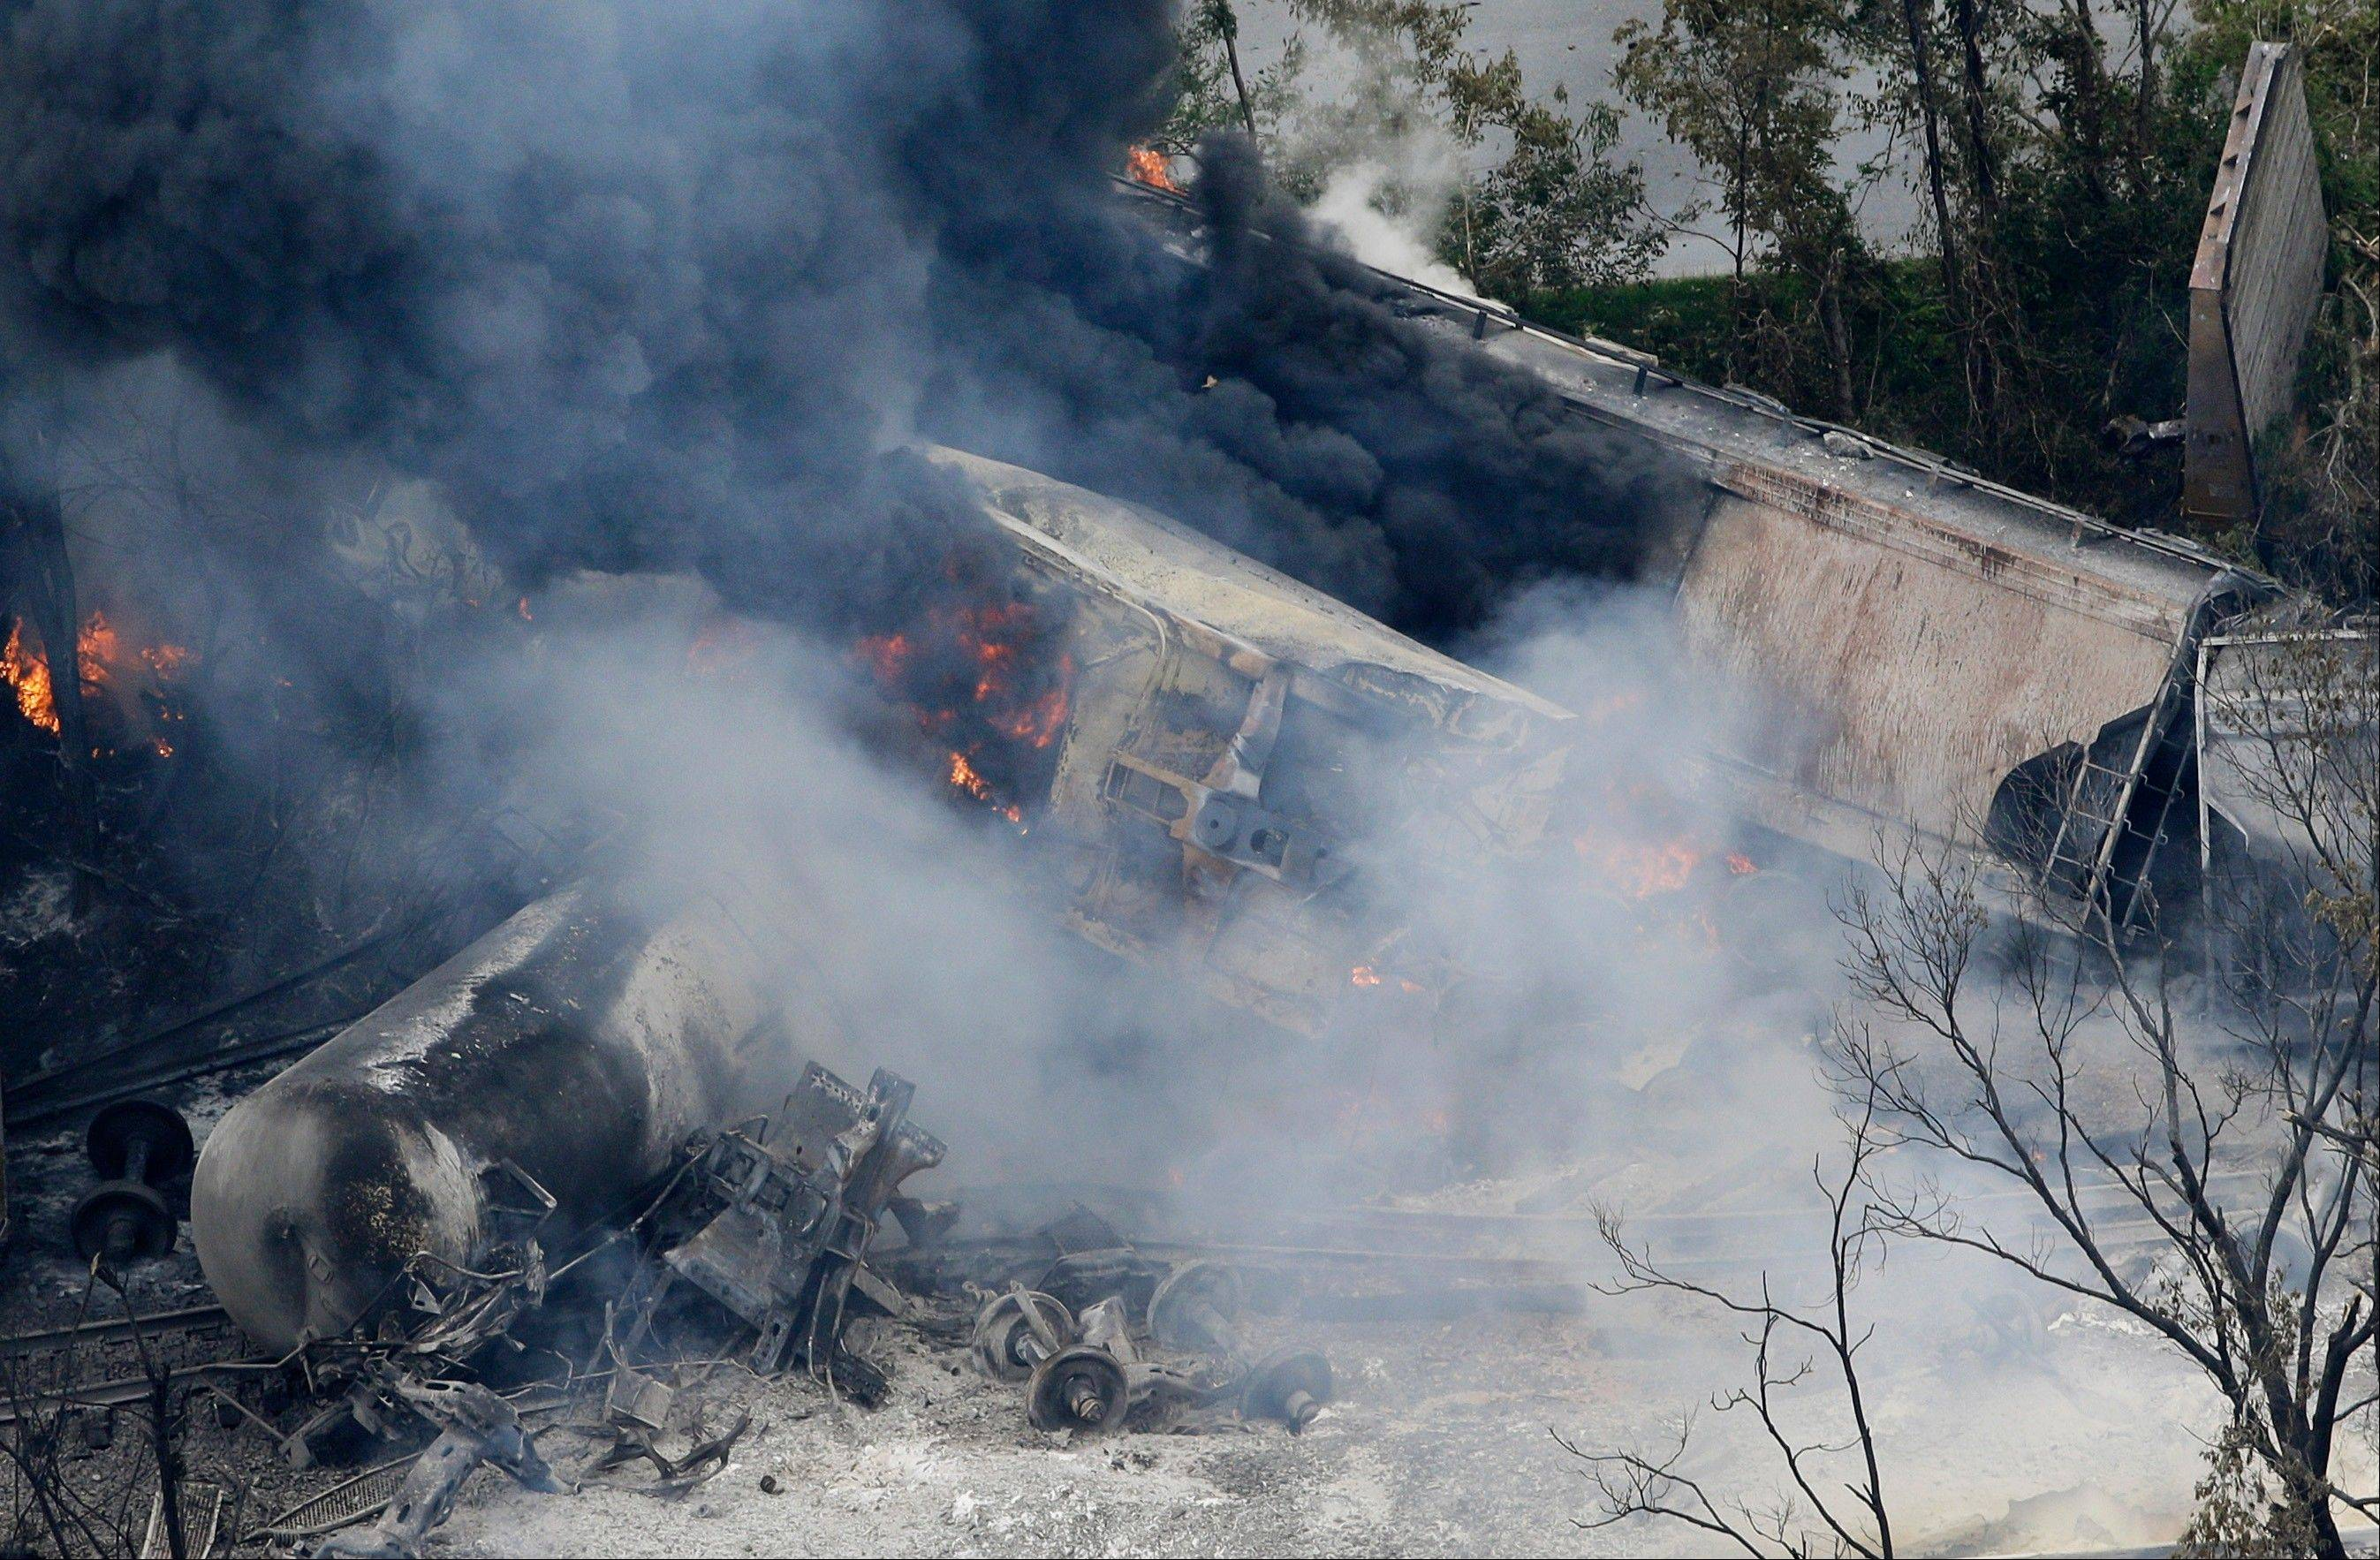 A fire burns at the site of a CSX freight train derailment, Tuesday, May 28, 2013, in Rosedale, Md., where fire officials say the train crashed into a trash truck, causing an explosion that rattled homes at least a half-mile away and collapsed nearby buildings, setting them on fire.